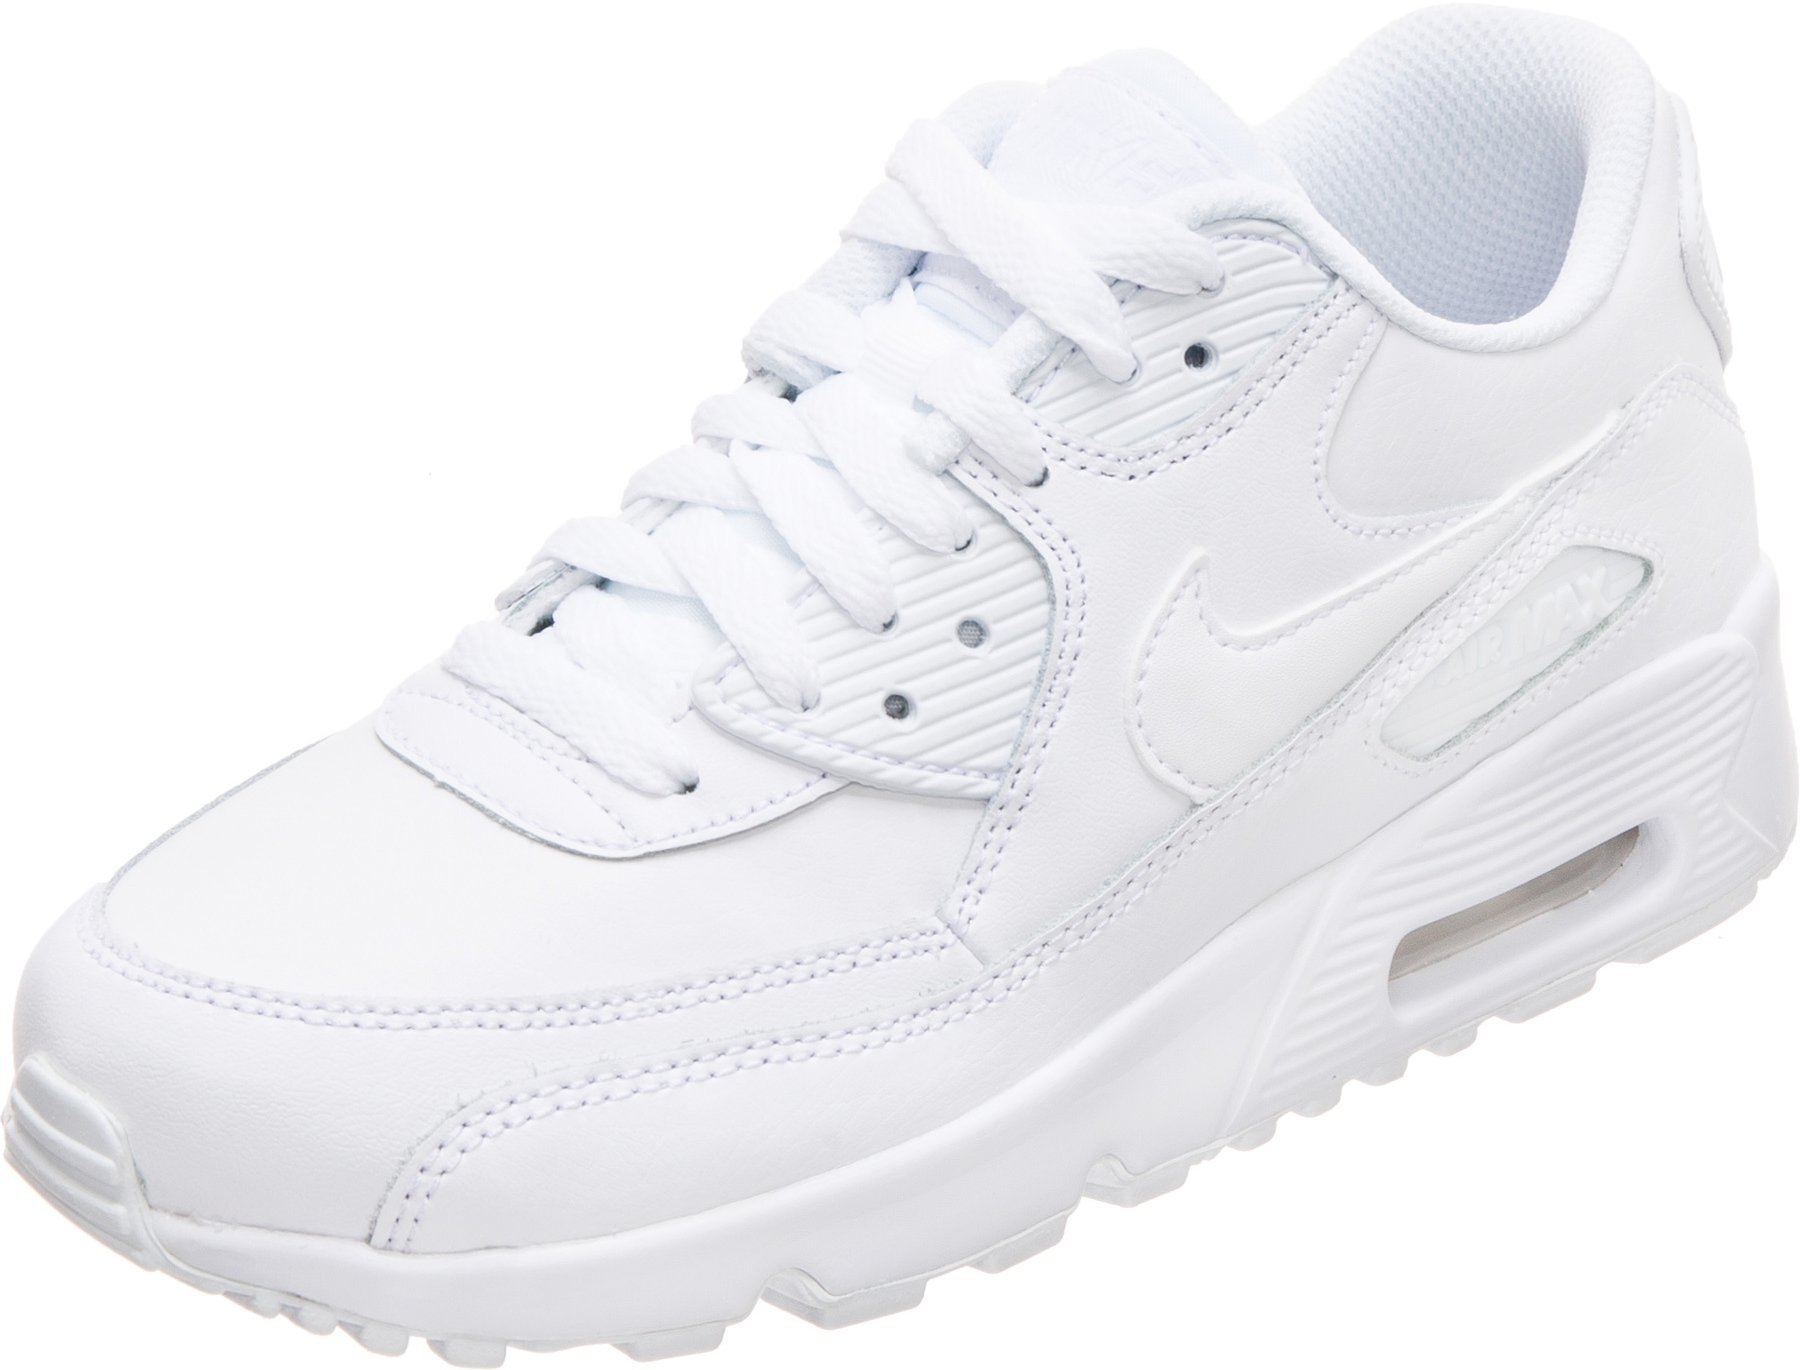 damen schuhe nike air max command flex lthr